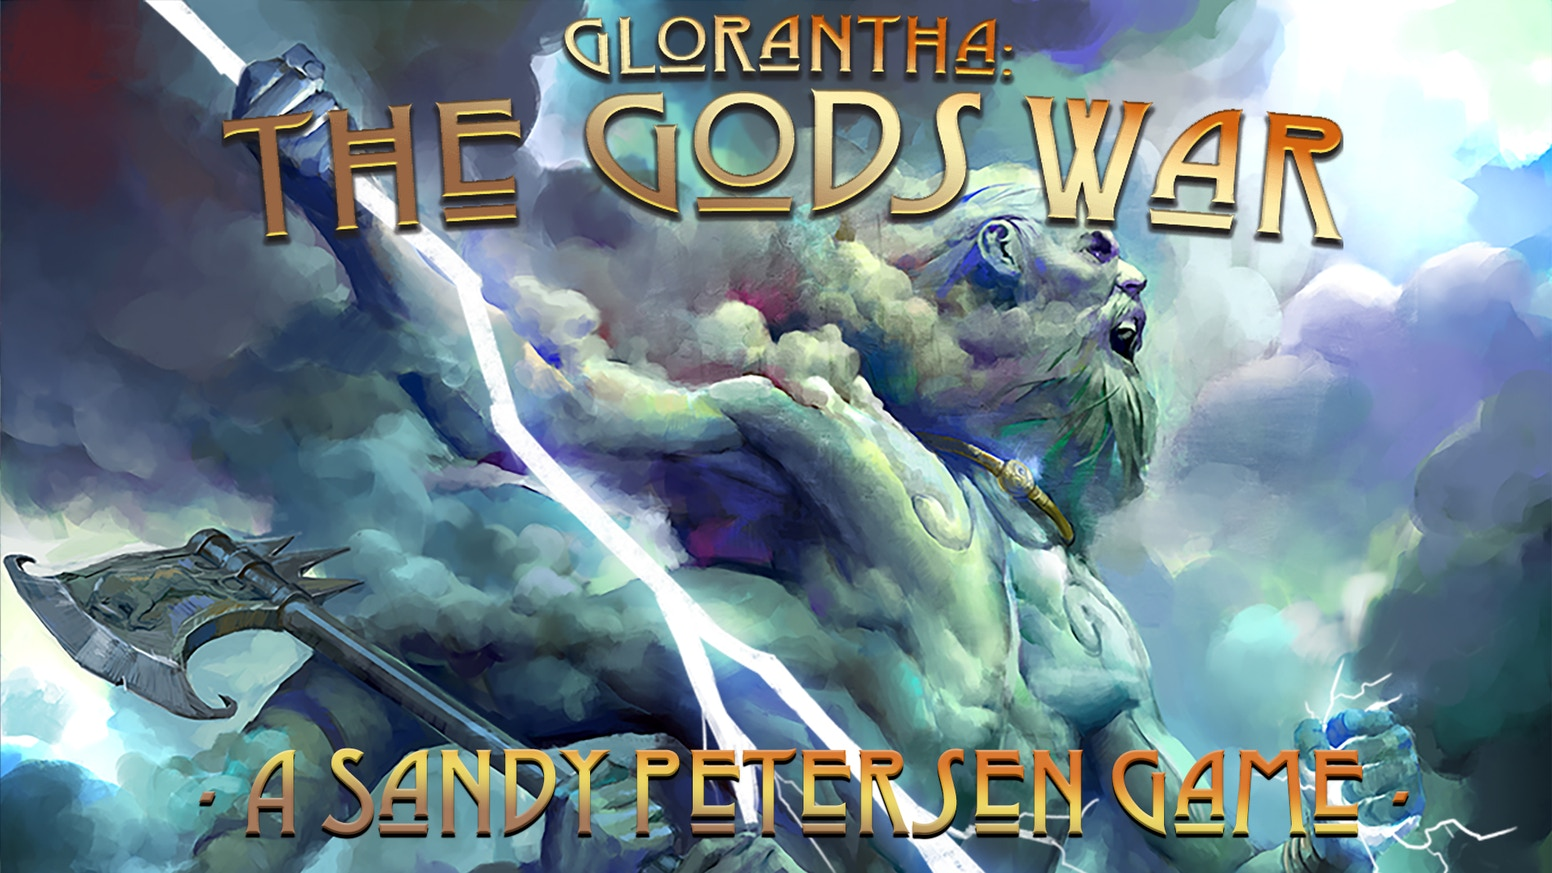 Glorantha: The Gods War board game combines asymmetric strategy with fantastic plastic figures.